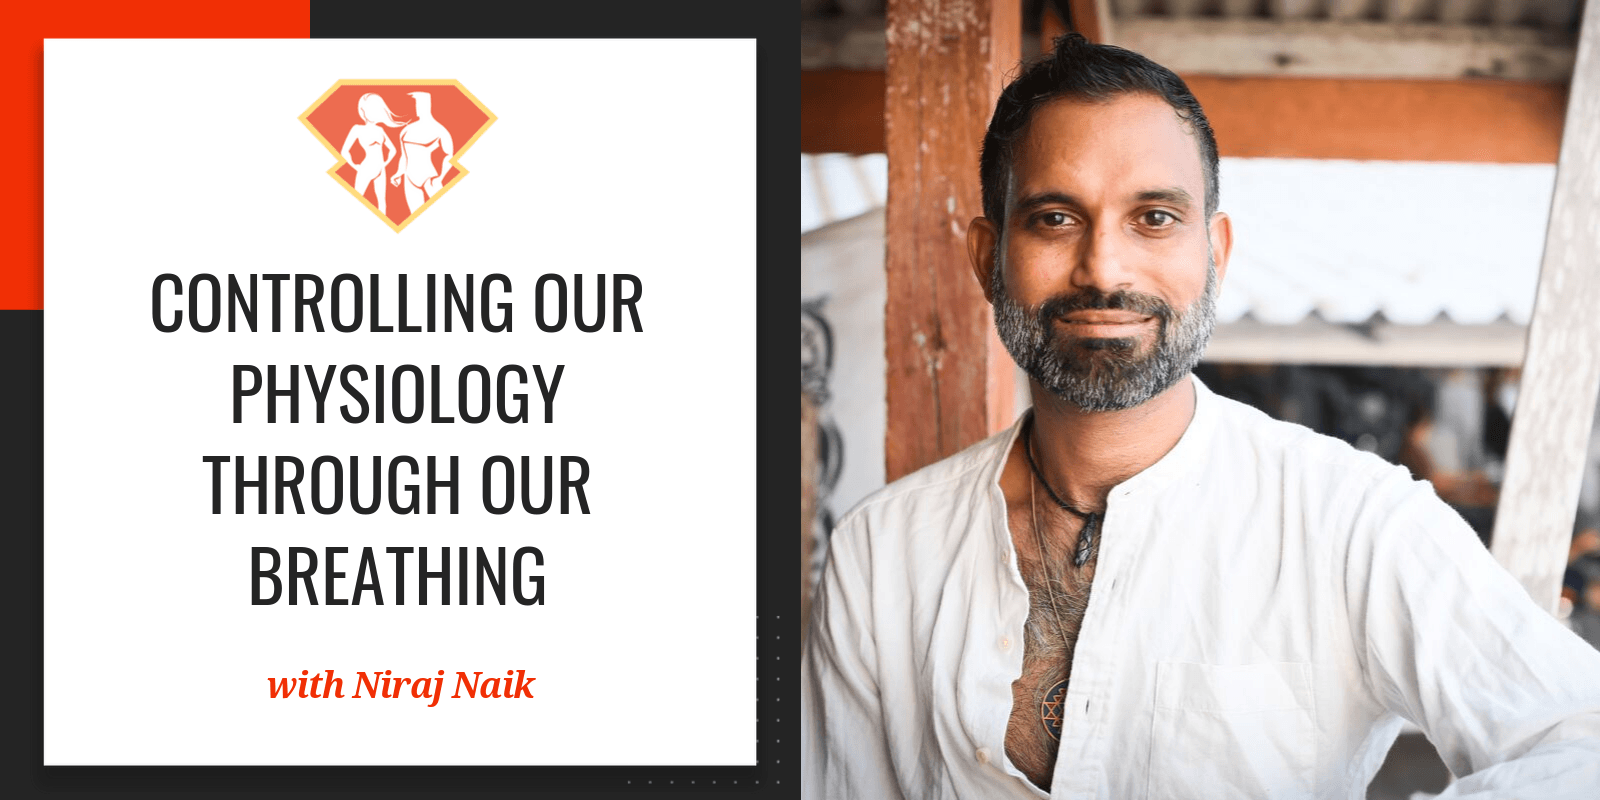 In this episode with Niraj Naik, we learn a ton about how our breath can affect our health, and how to utilize breath to change our physiology.